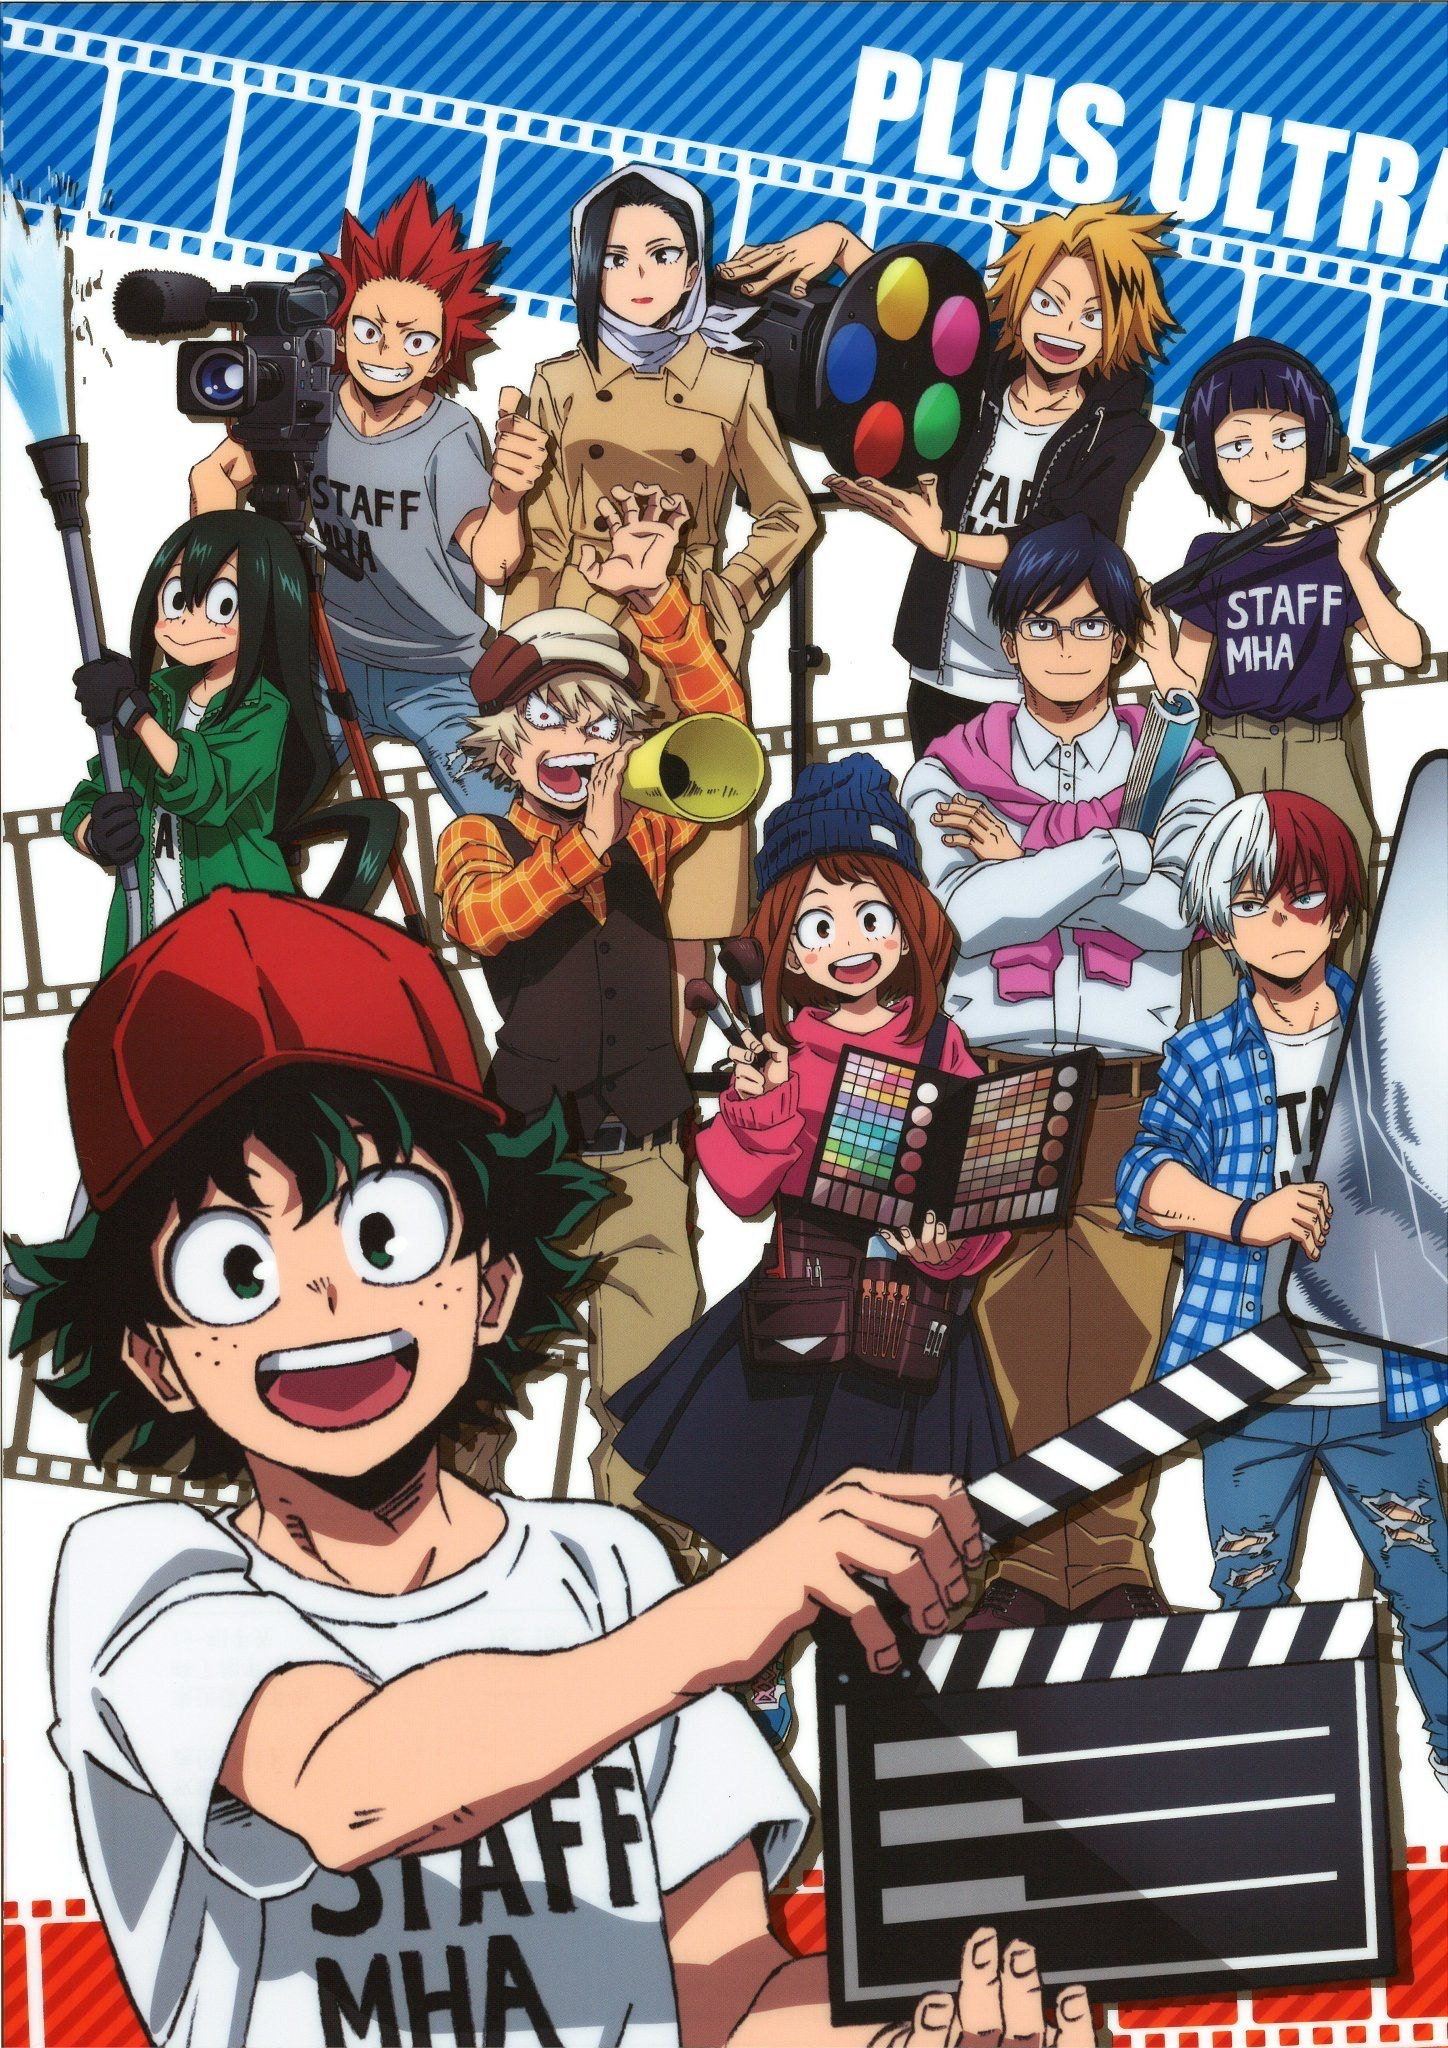 Pin by Morenistar on Bnha actor au in 2020 My hero, My